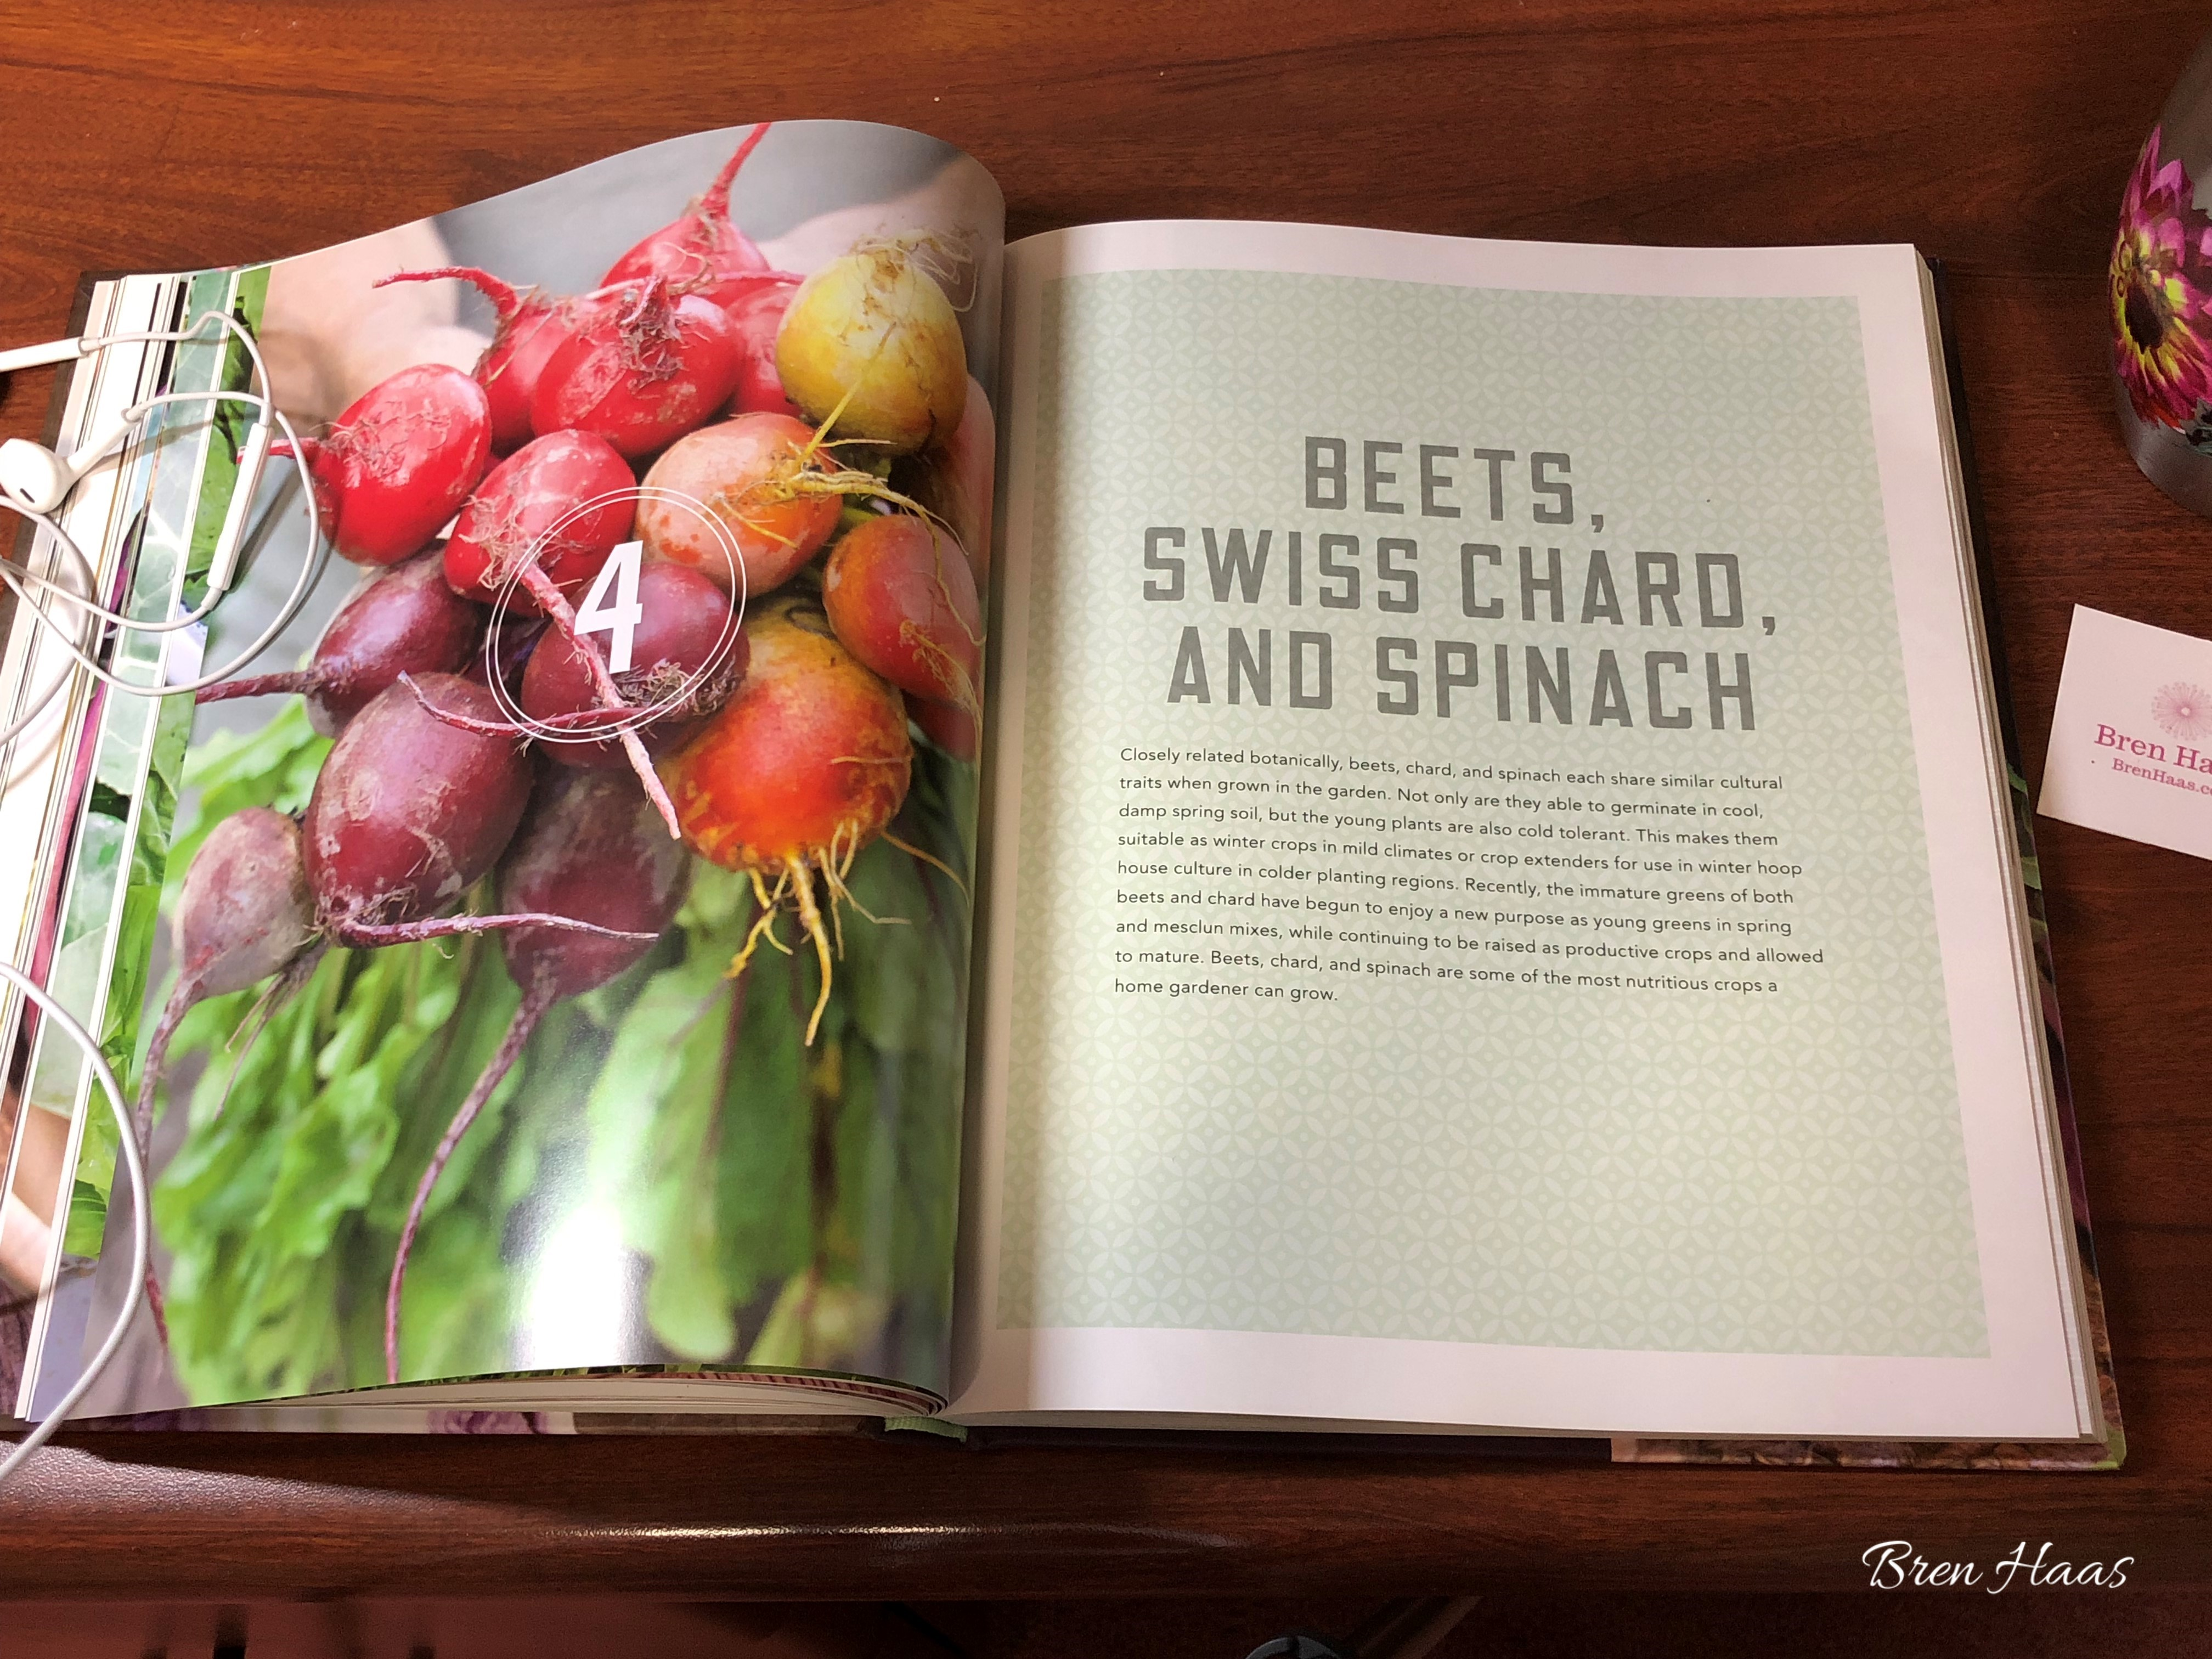 coolcrops including beets